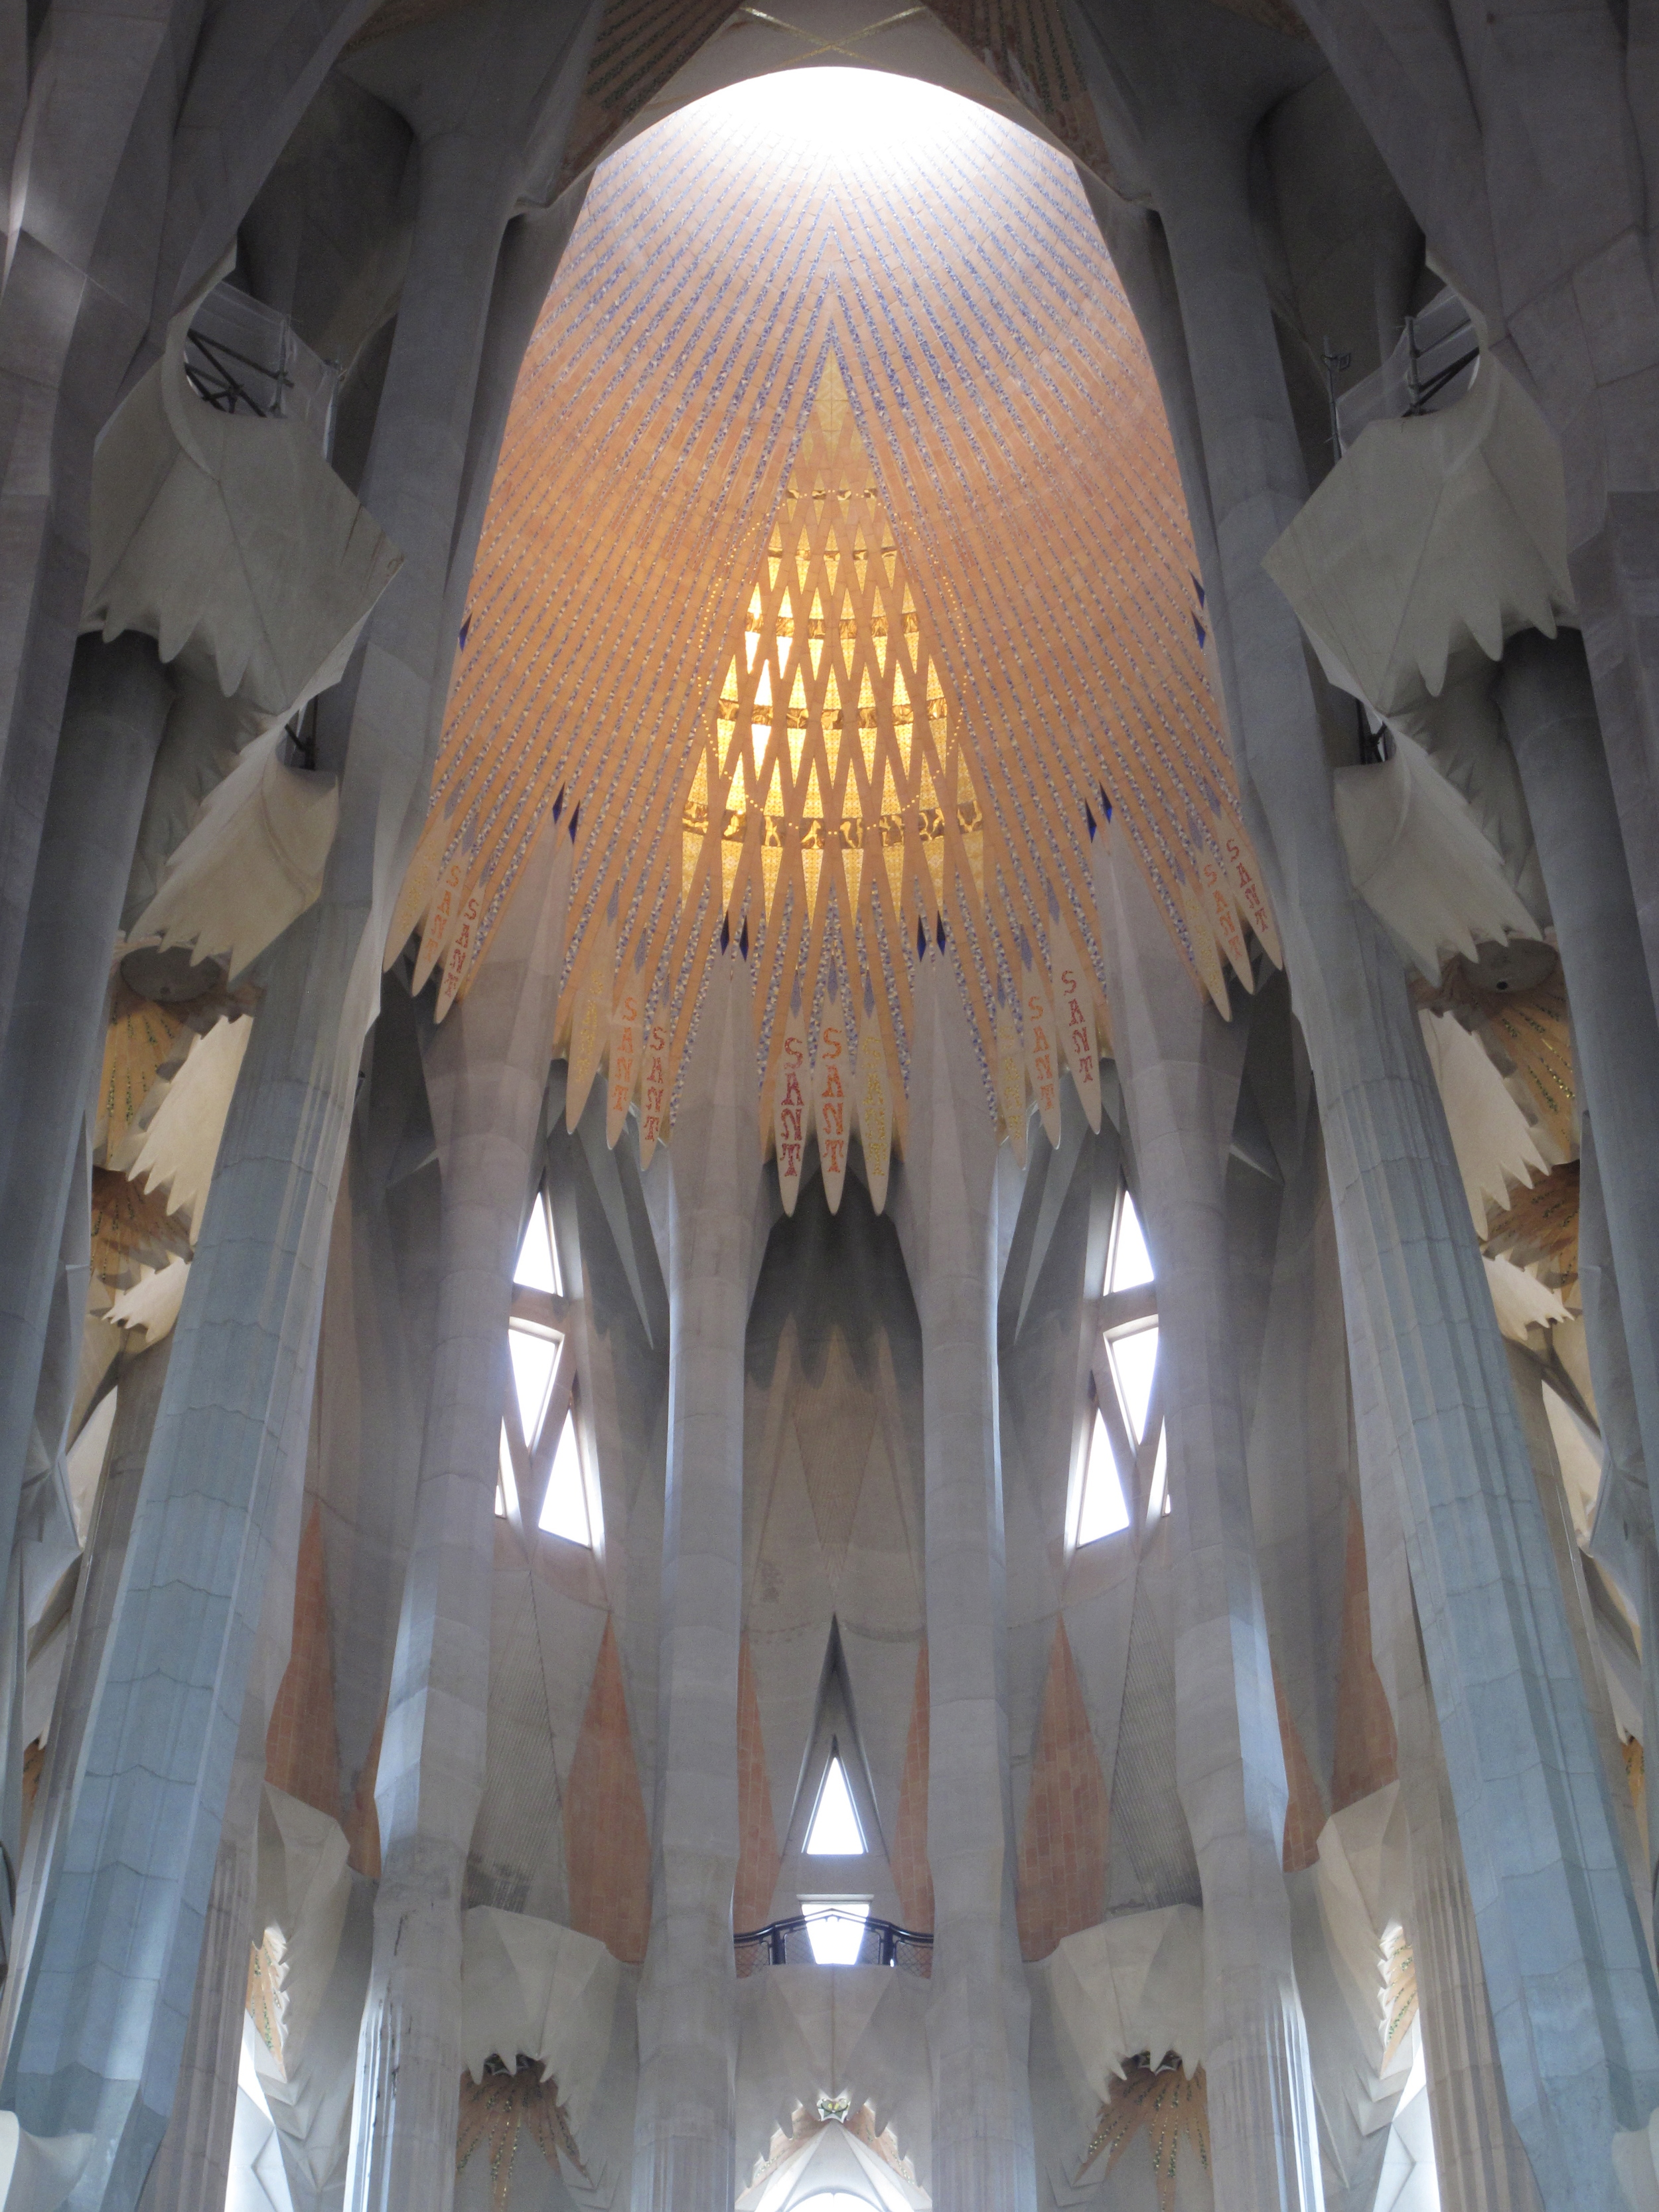 Inside of Sagrada Familia, rays of light on the ceiling